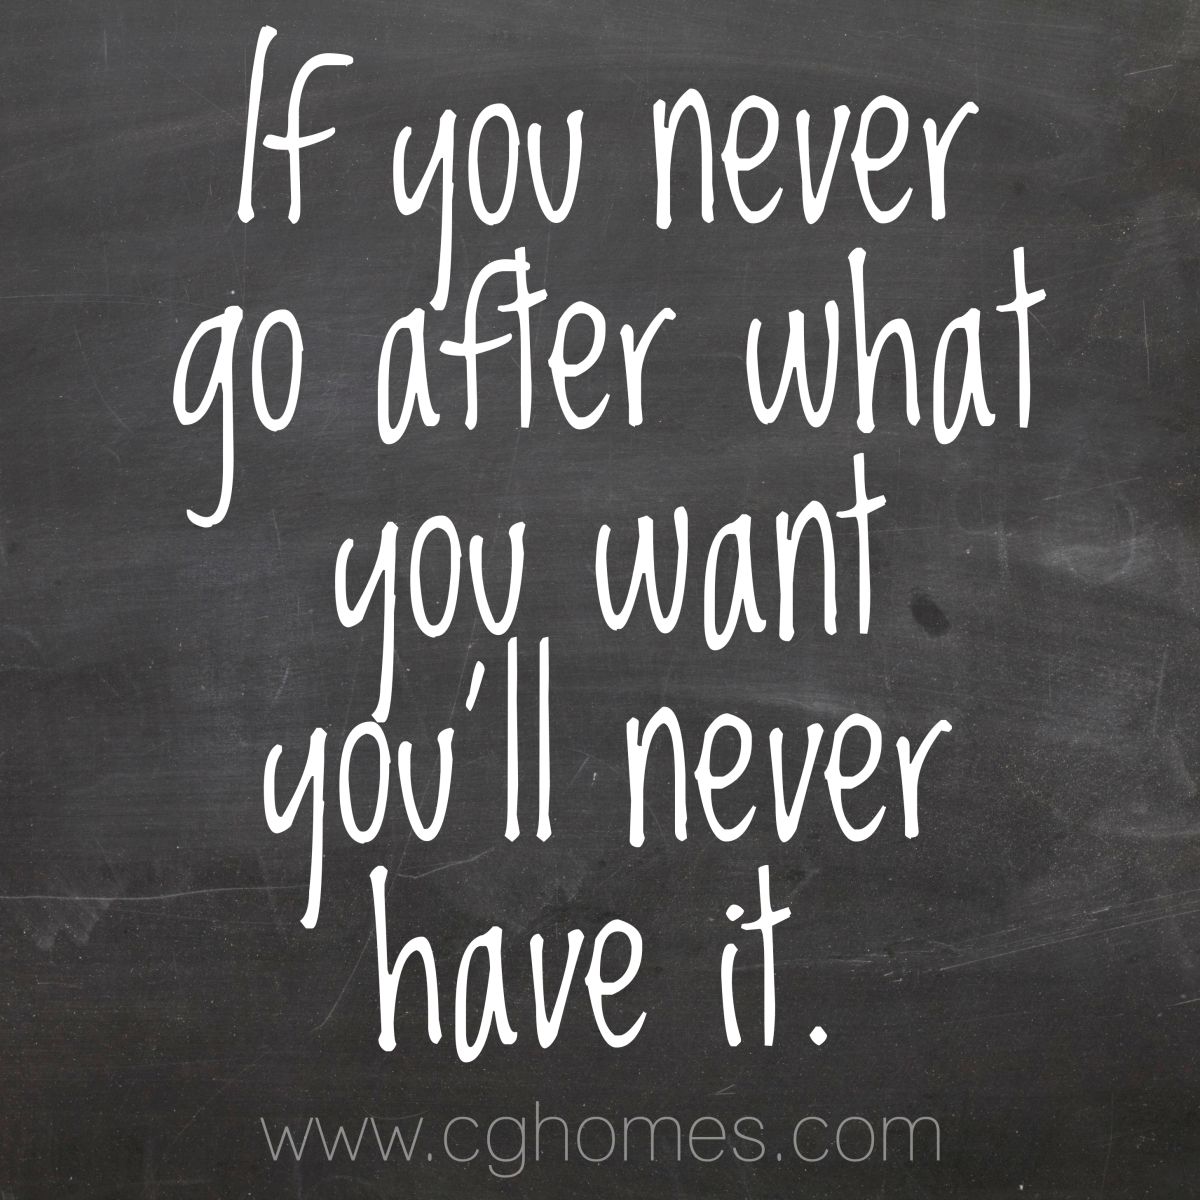 Go For It Quotes: Go For What You Want Quotes. QuotesGram